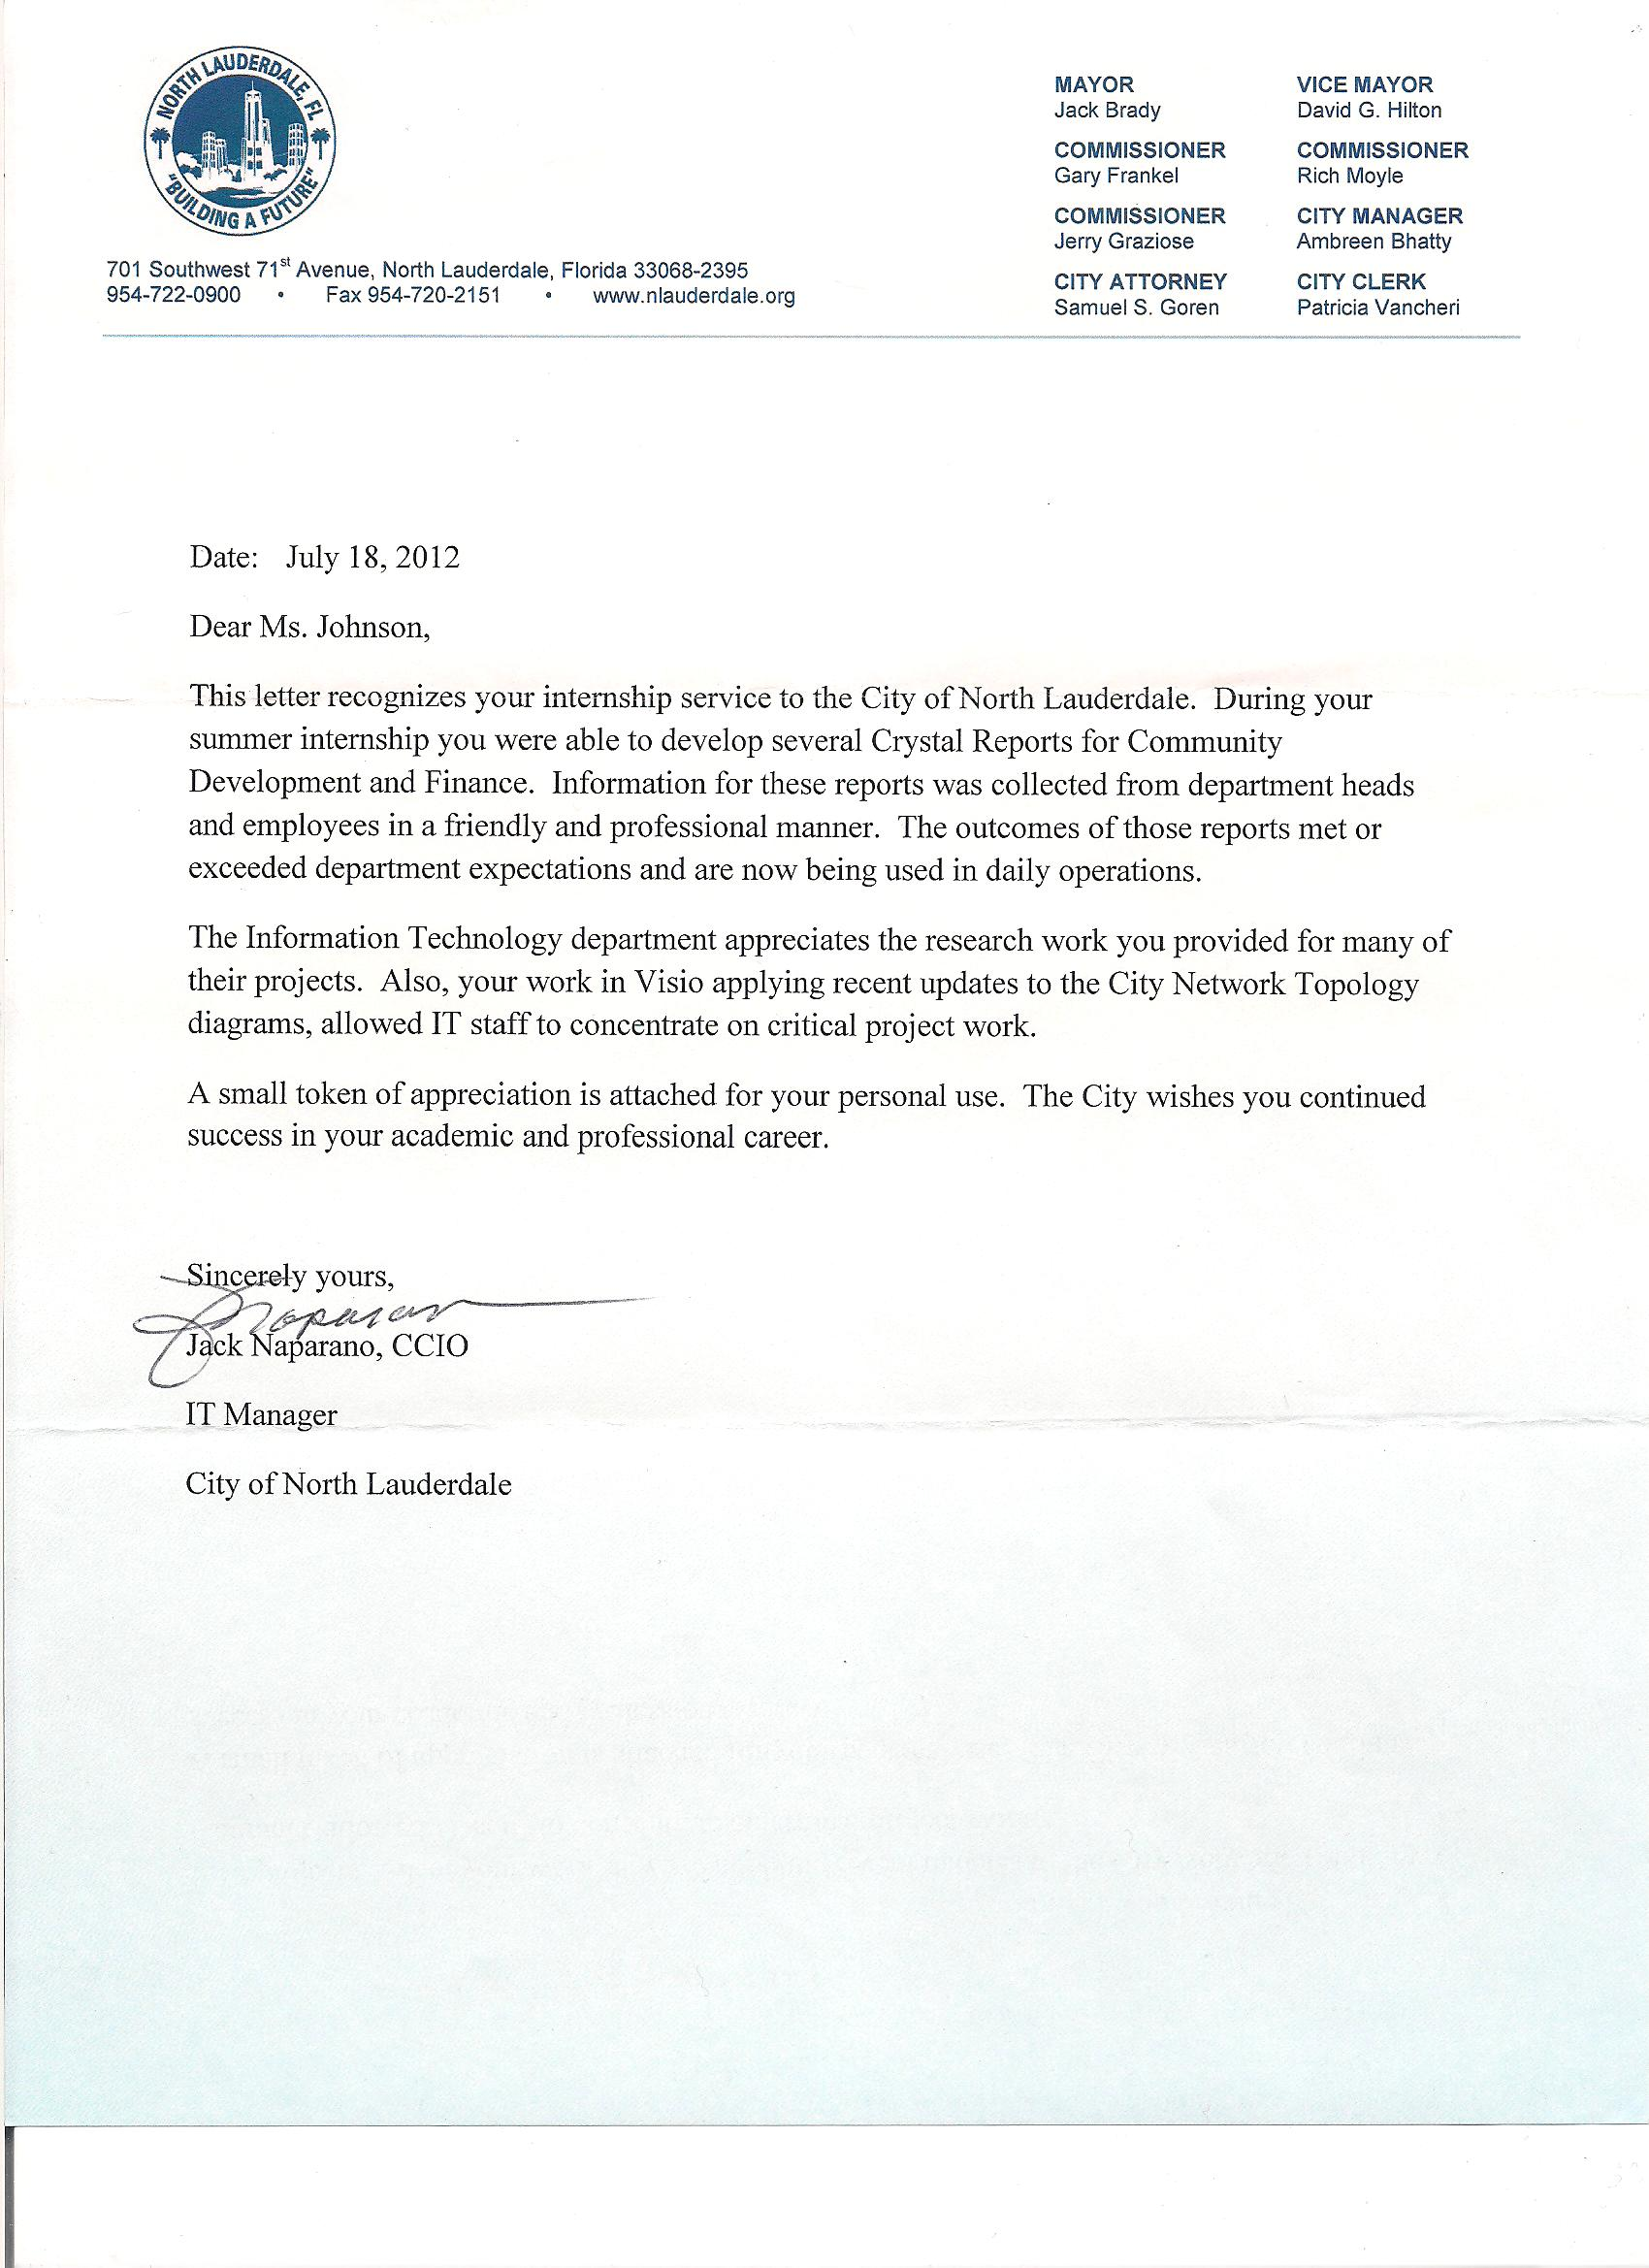 funny goodbye letter for co workers coworker retirement goodbye letter